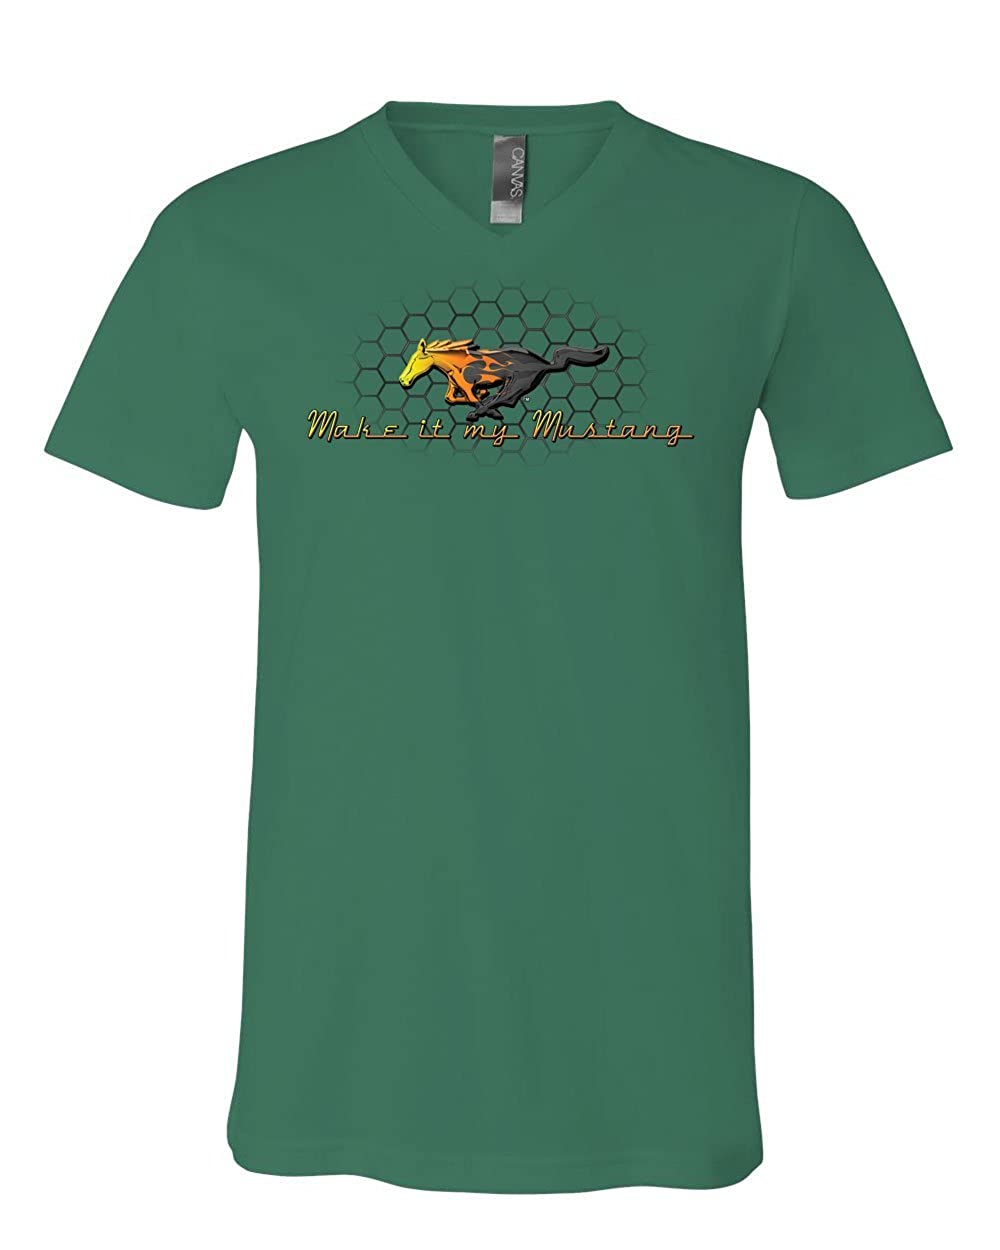 Make it My Mustang V-Neck T-Shirt Honeycomb American Classic Fire Horse Tee